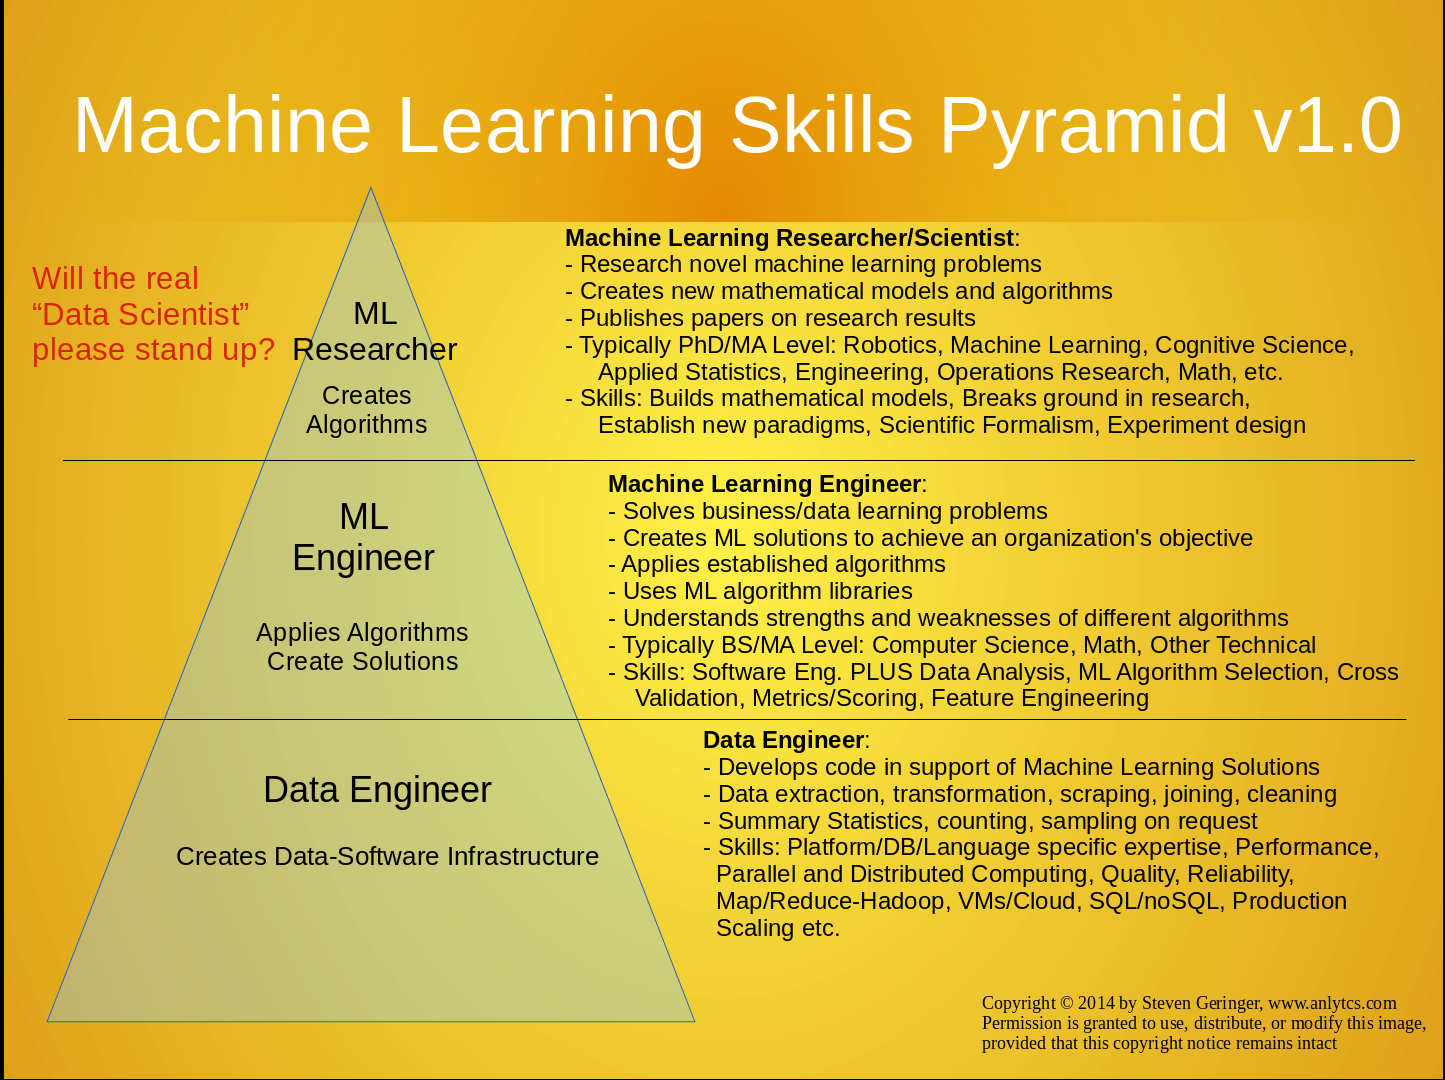 Steve blank startup tools machine learning skills fandeluxe Images